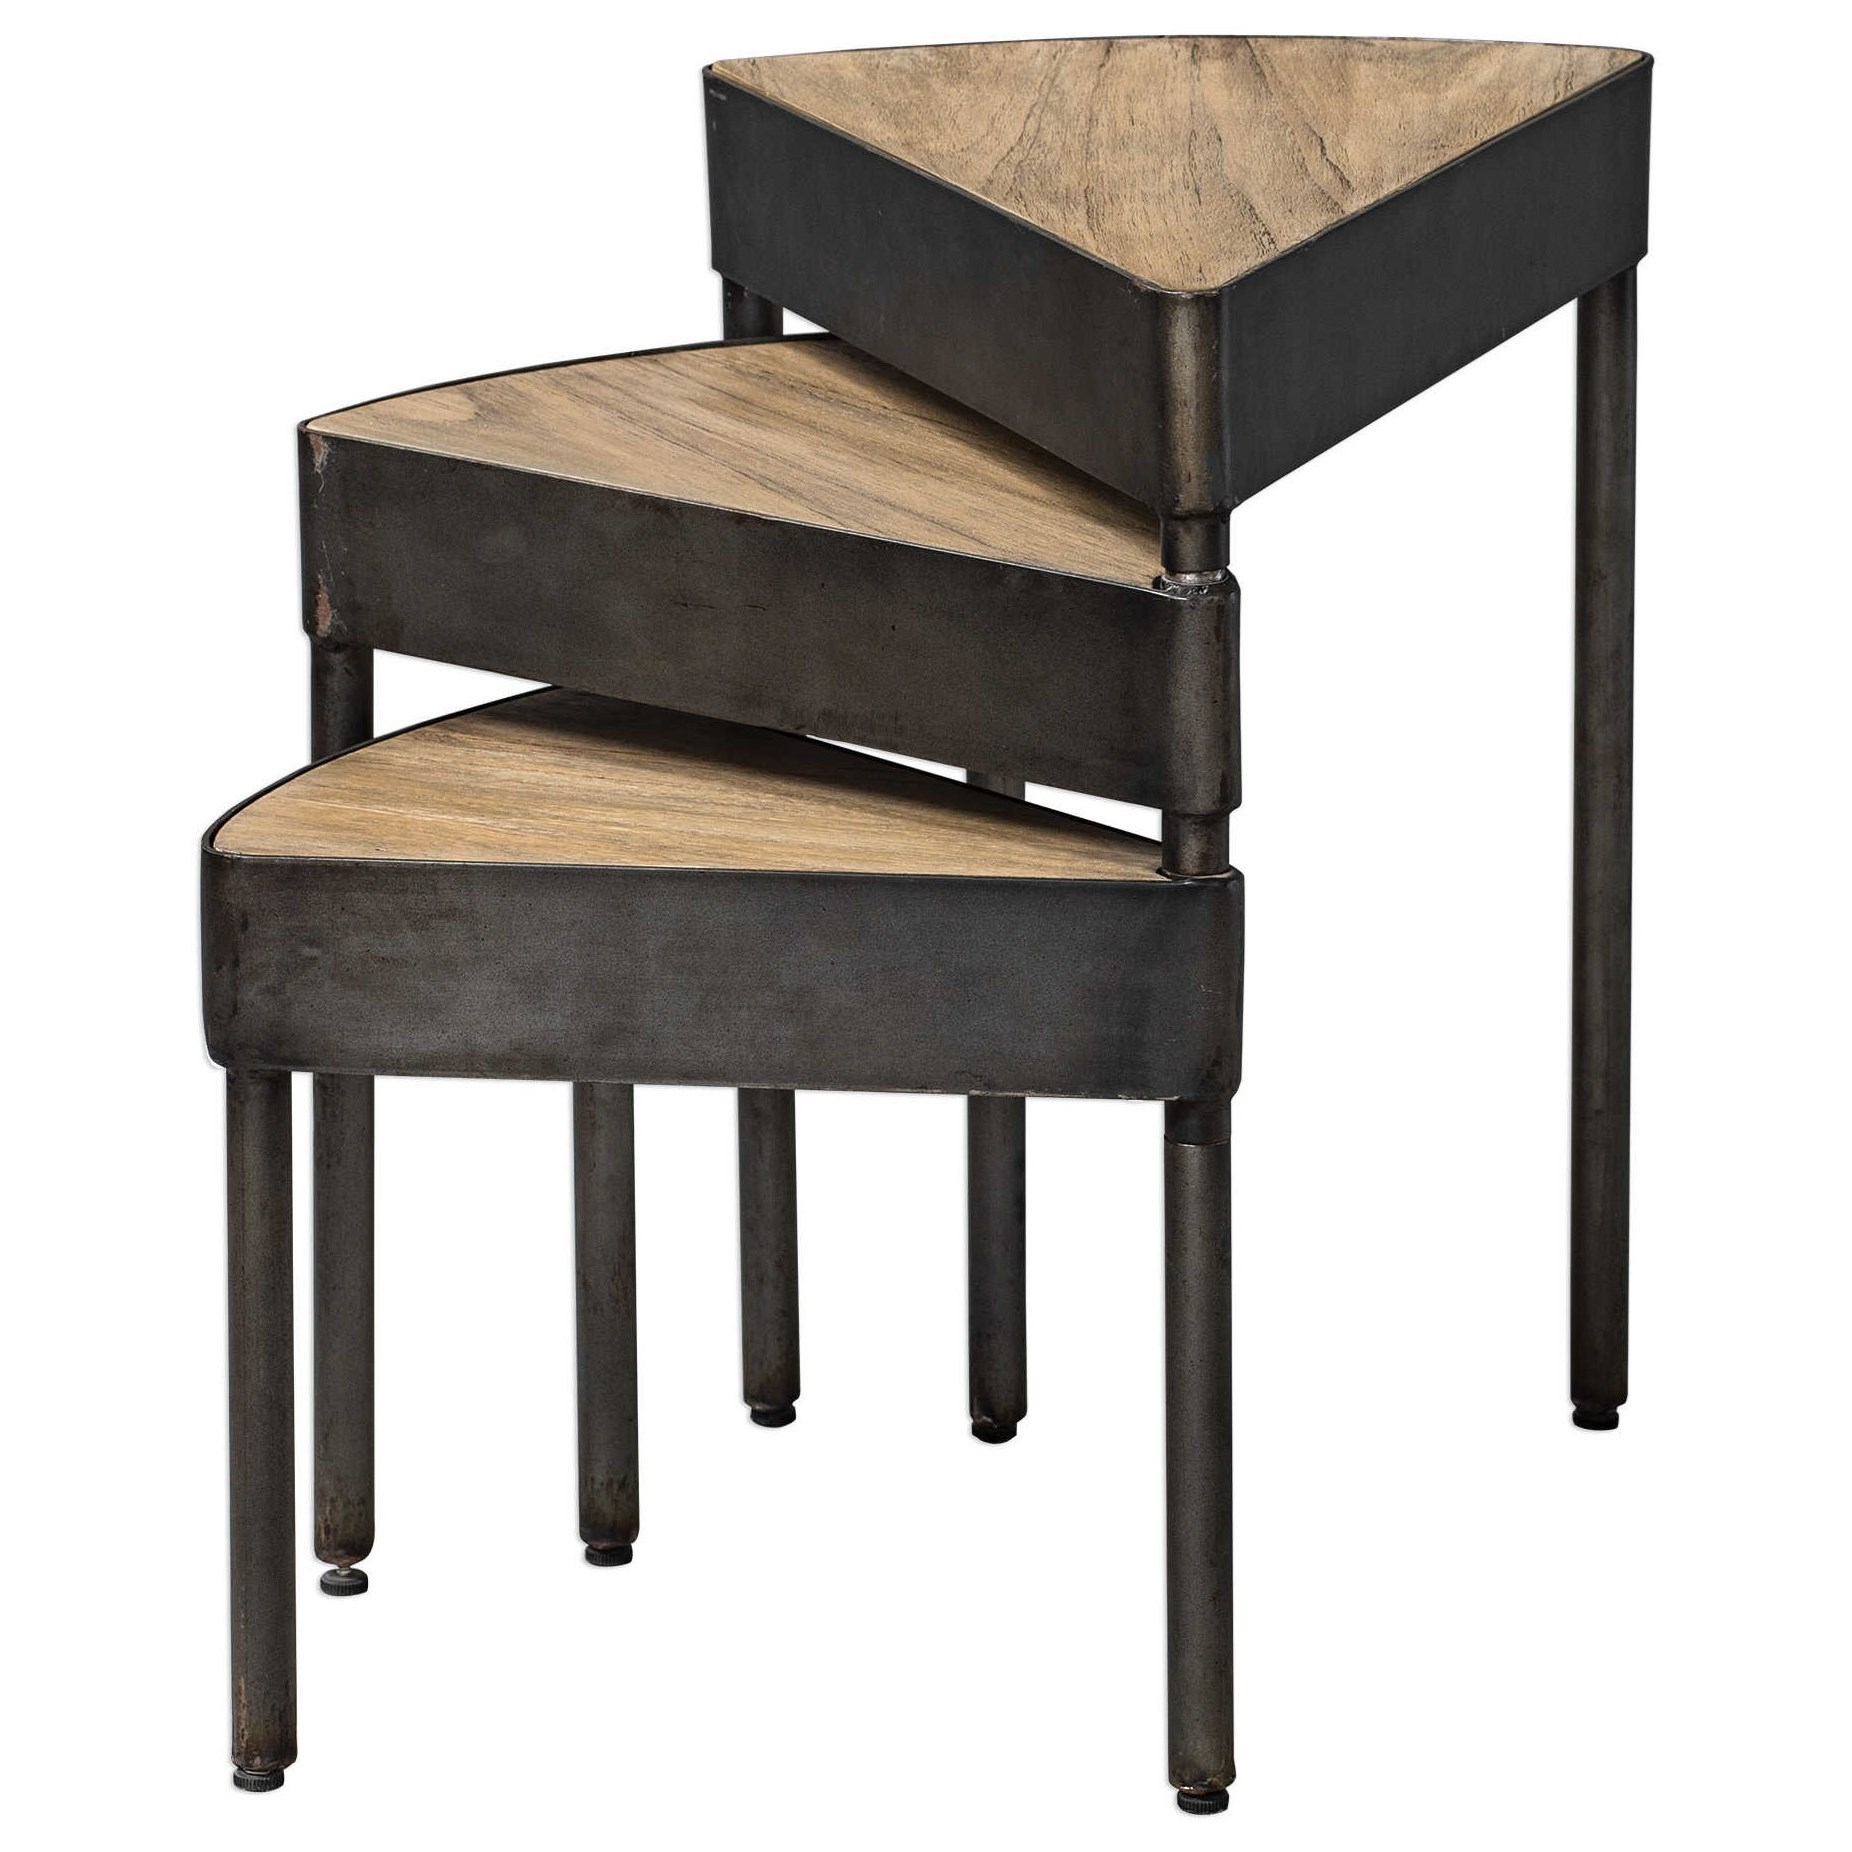 Accent Furniture - Occasional Tables Akito Nesting Table by Uttermost at Esprit Decor Home Furnishings